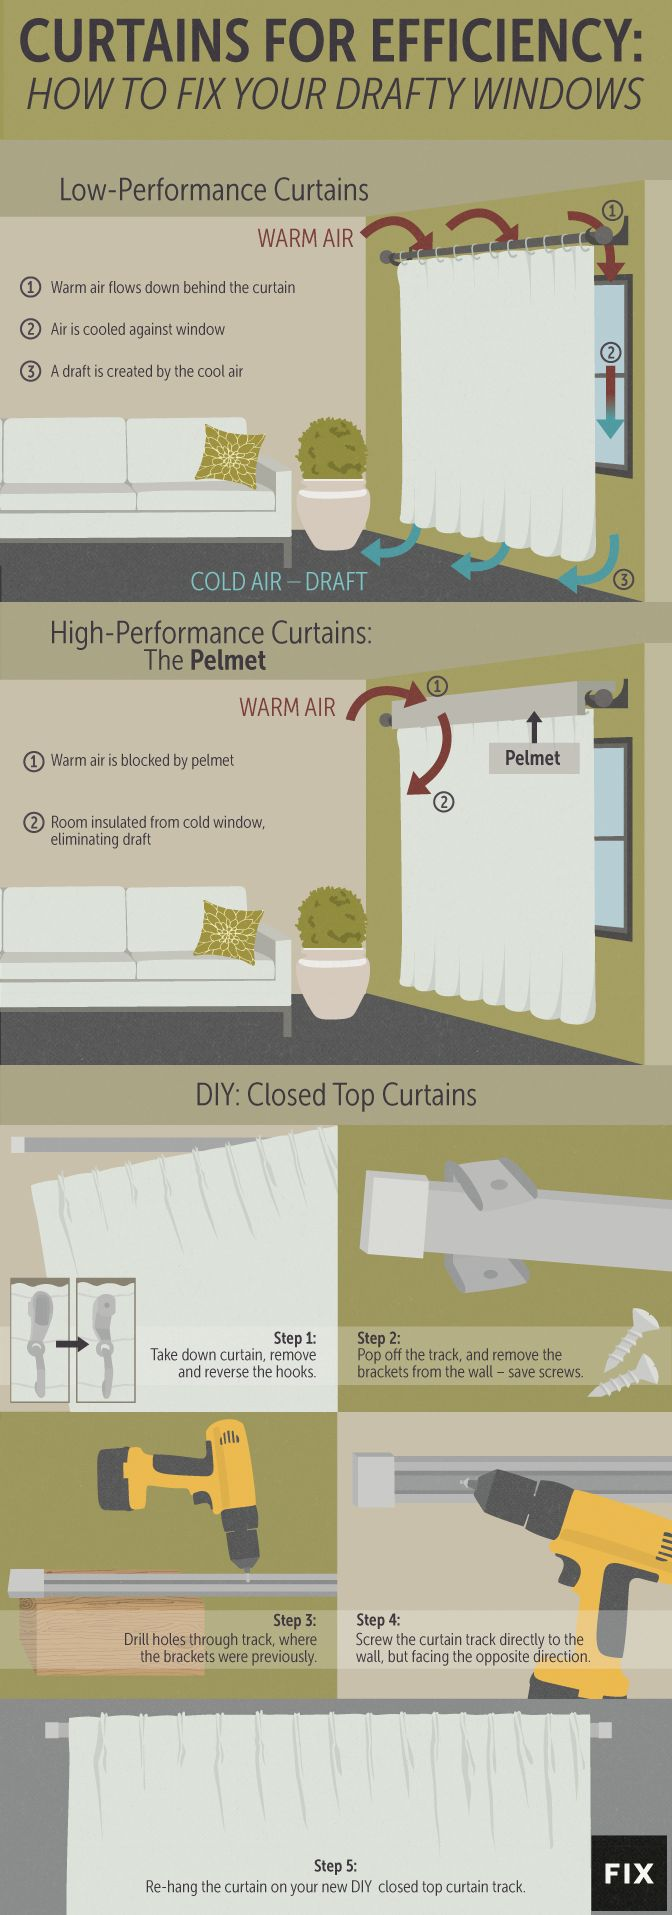 293 best Energy Efficient images on Pinterest | Sustainability ...